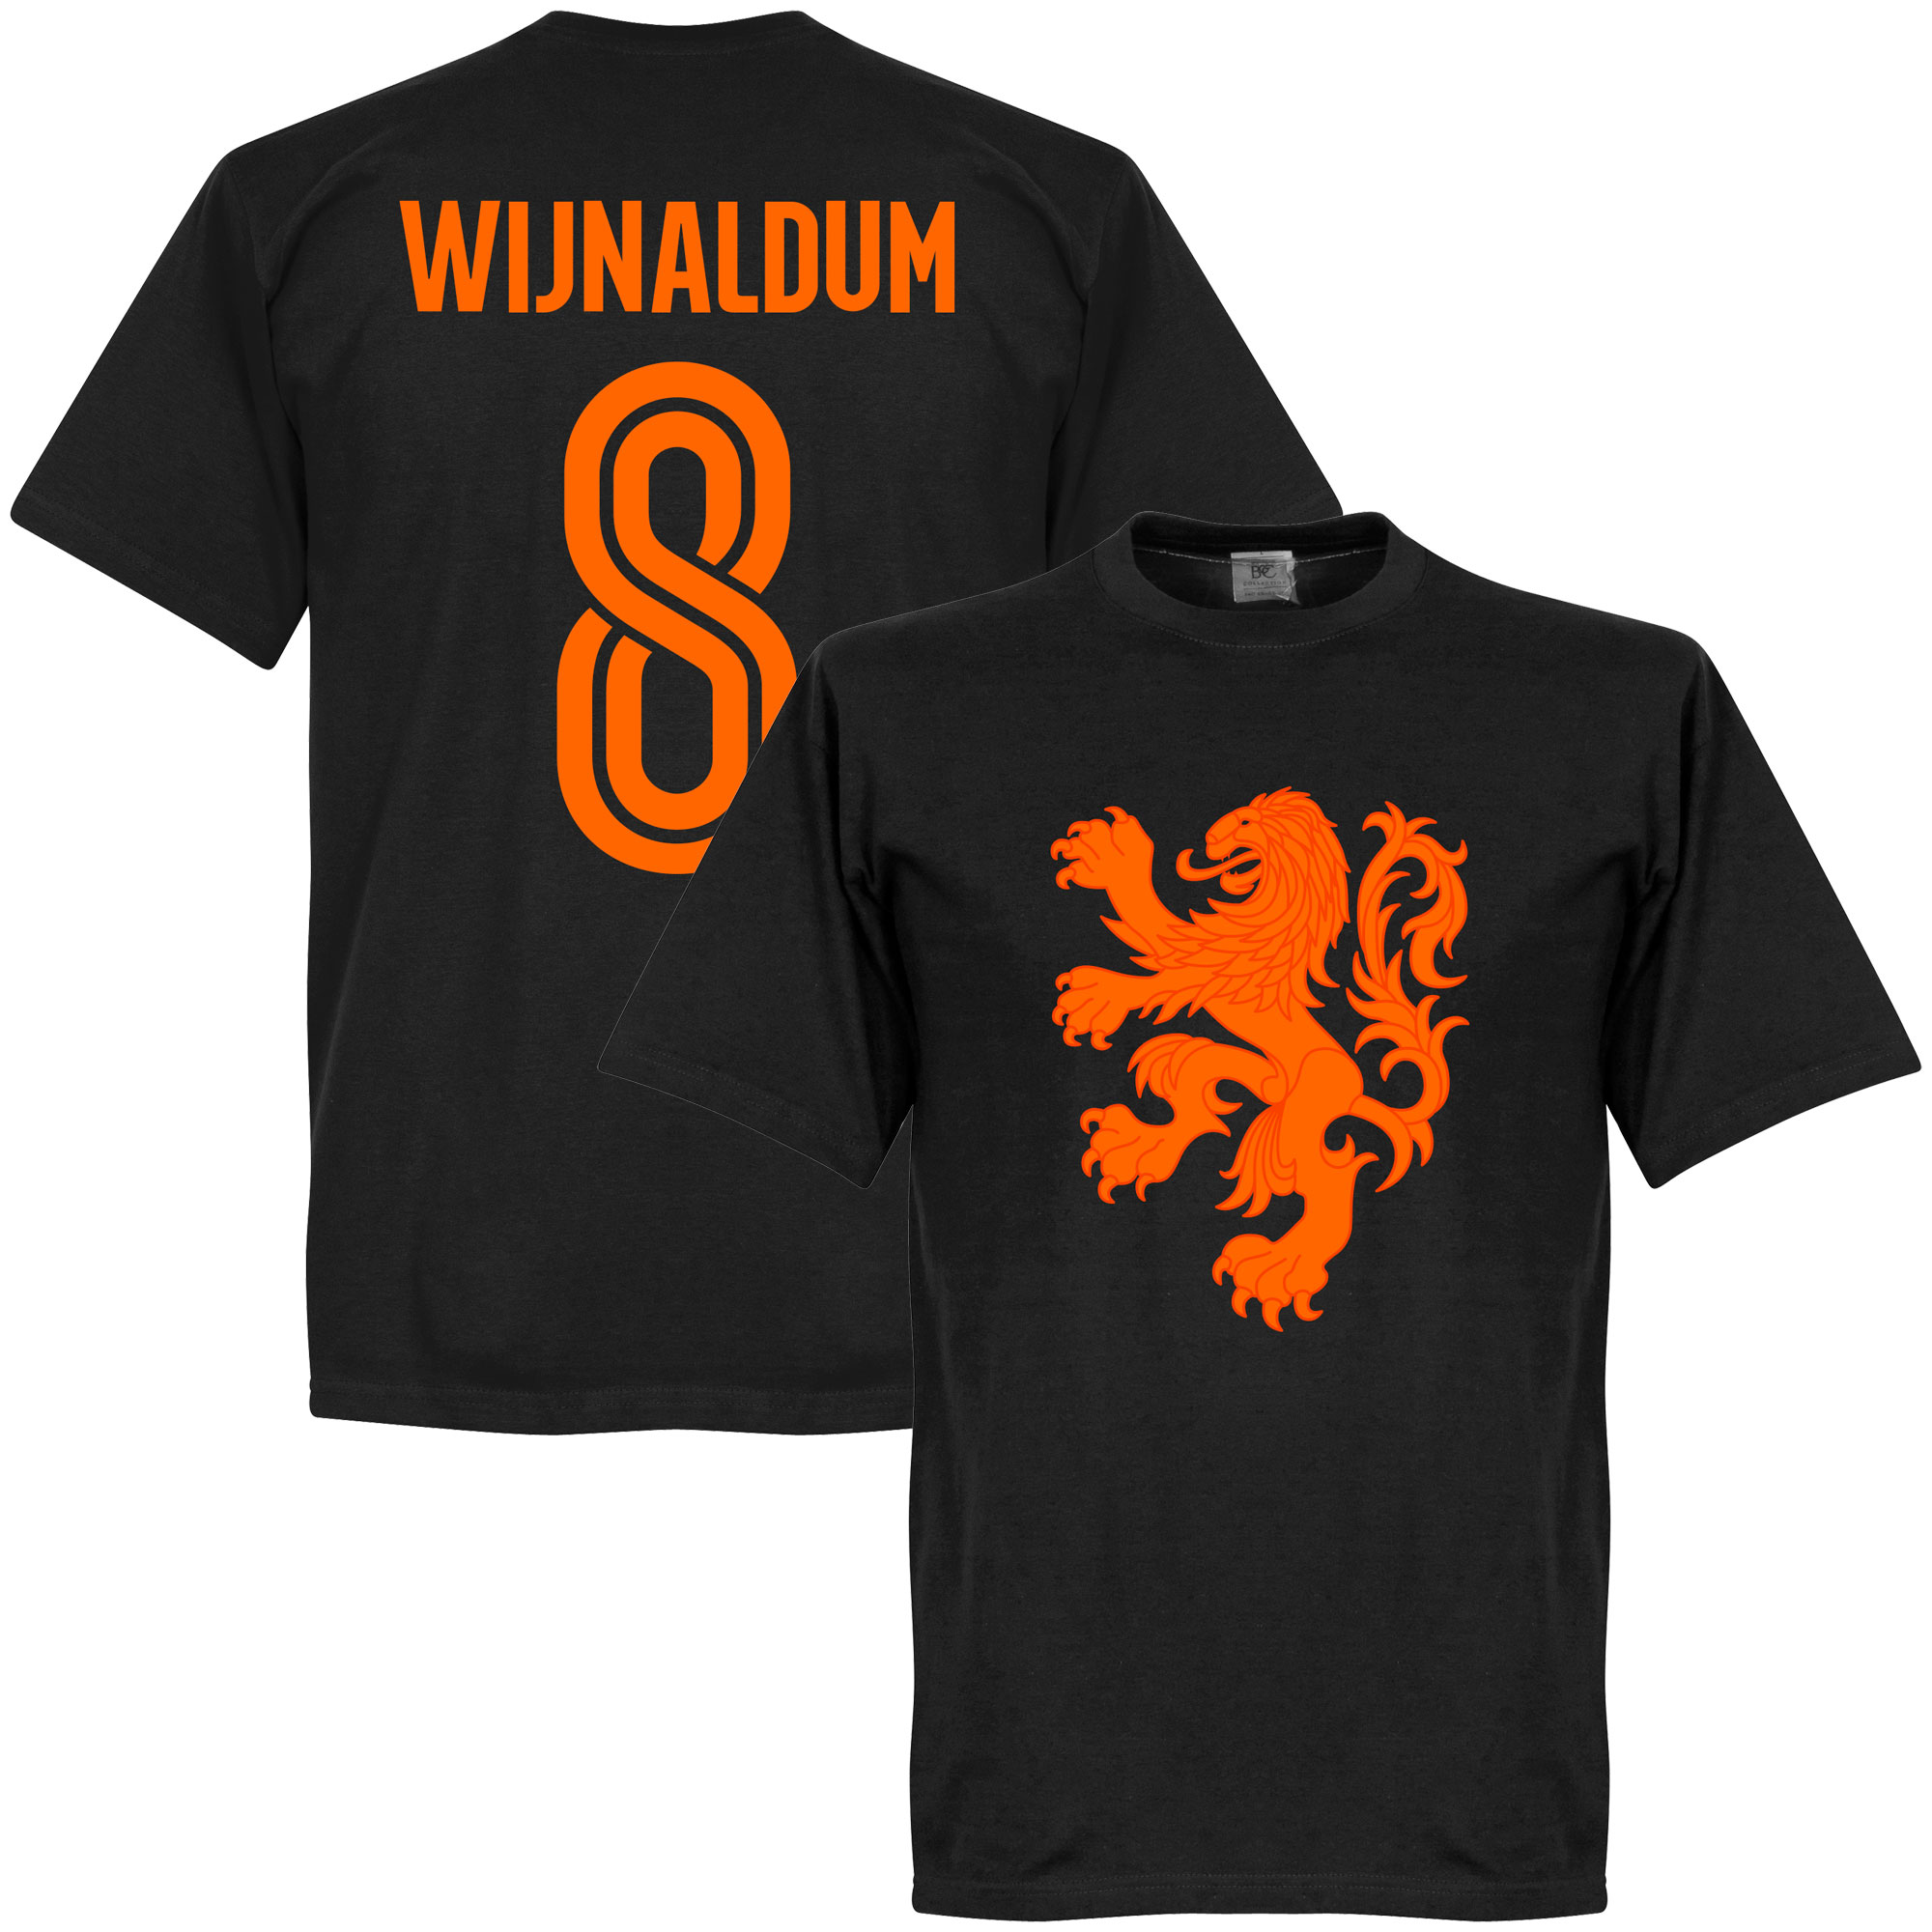 Holland Wijnaldum Lion Tee - Black - XXXXL